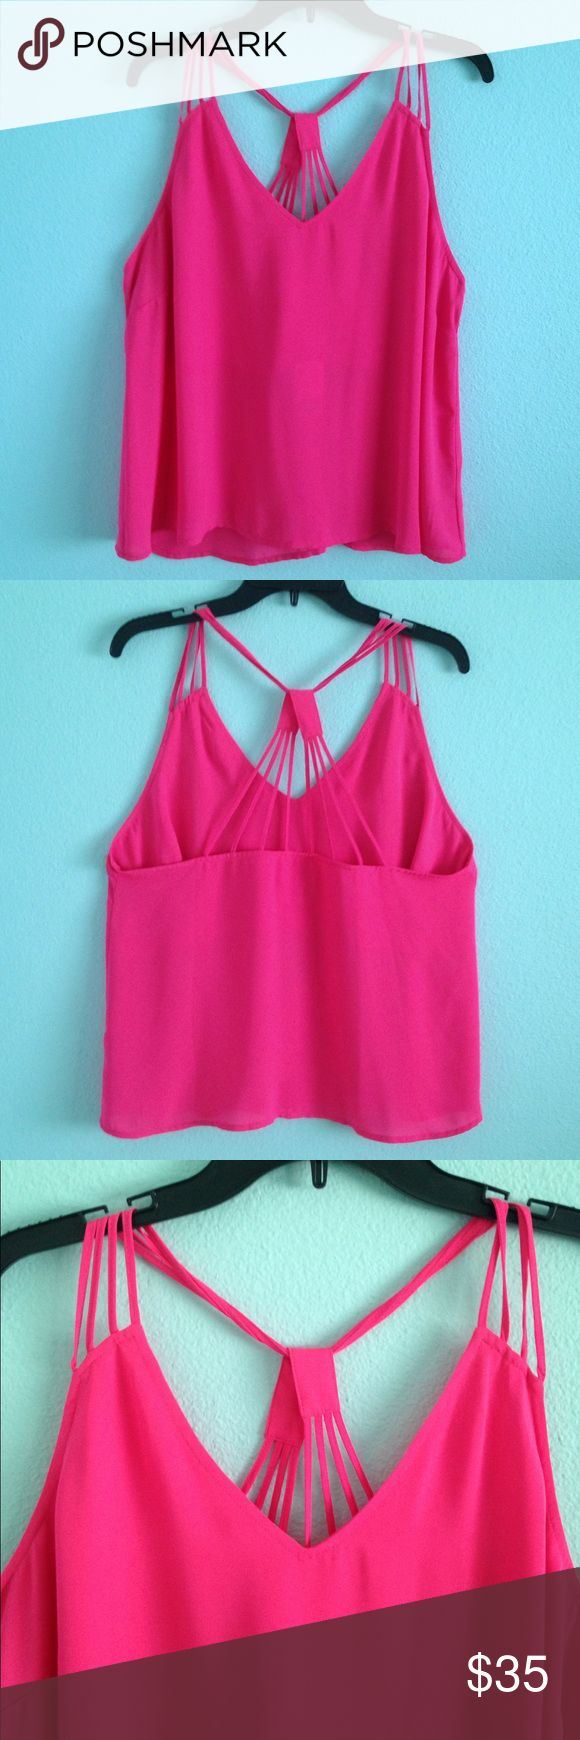 Hot pink strappy tank top New without tags. Hot pink with strappy detail. Flowy fit. Can fit anysize not see through Tops Tank Tops